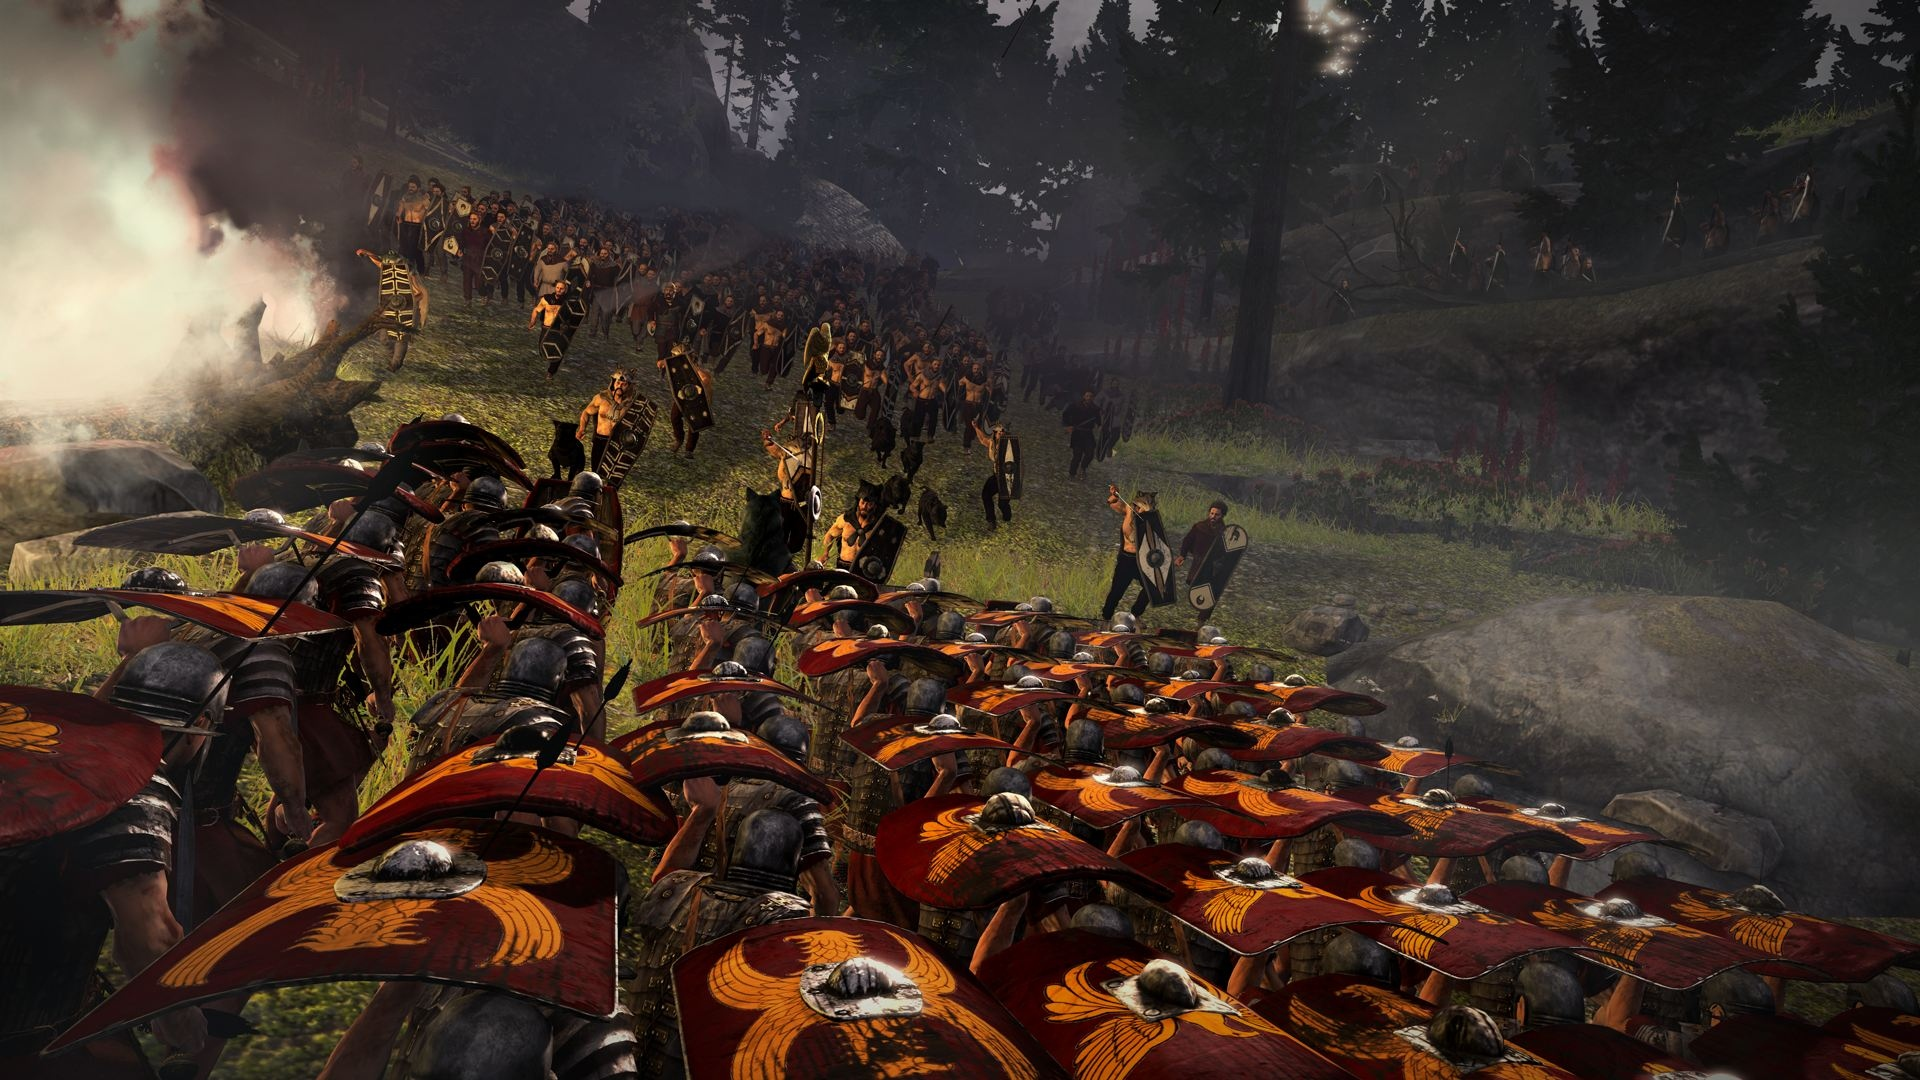 Best RTS games that came out in the past few years? | NeoGAF